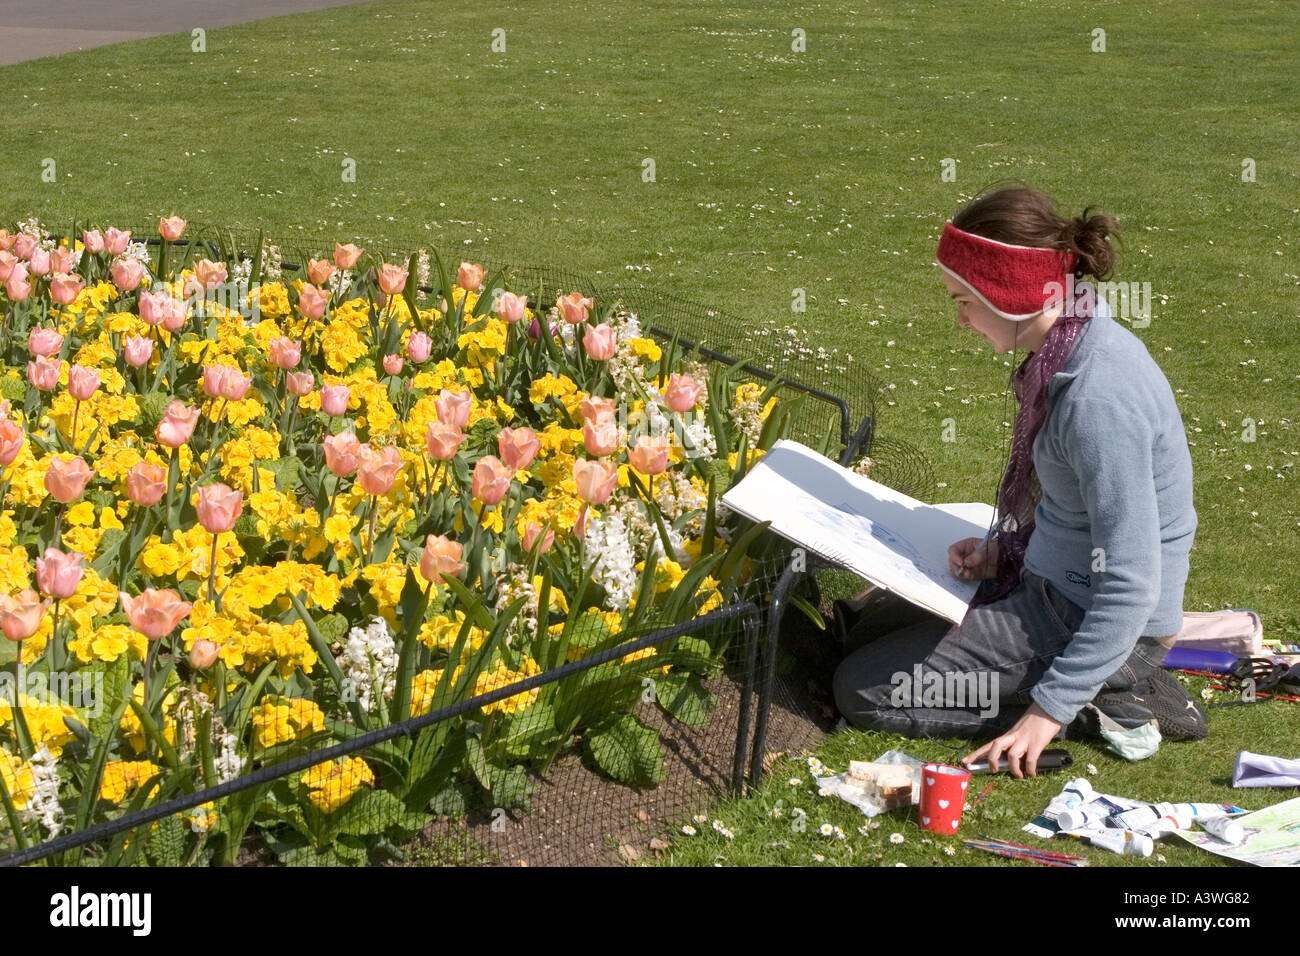 Artist drawing Tulip Apricot Beauty and Primula Crescendo Lemon Yellow - Stock Image